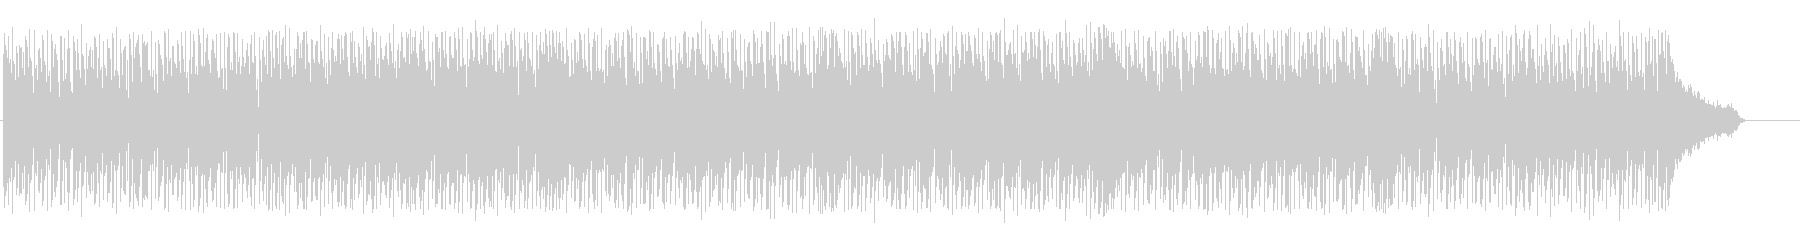 Bright rhythmic techno BGM's unreproduced waveform